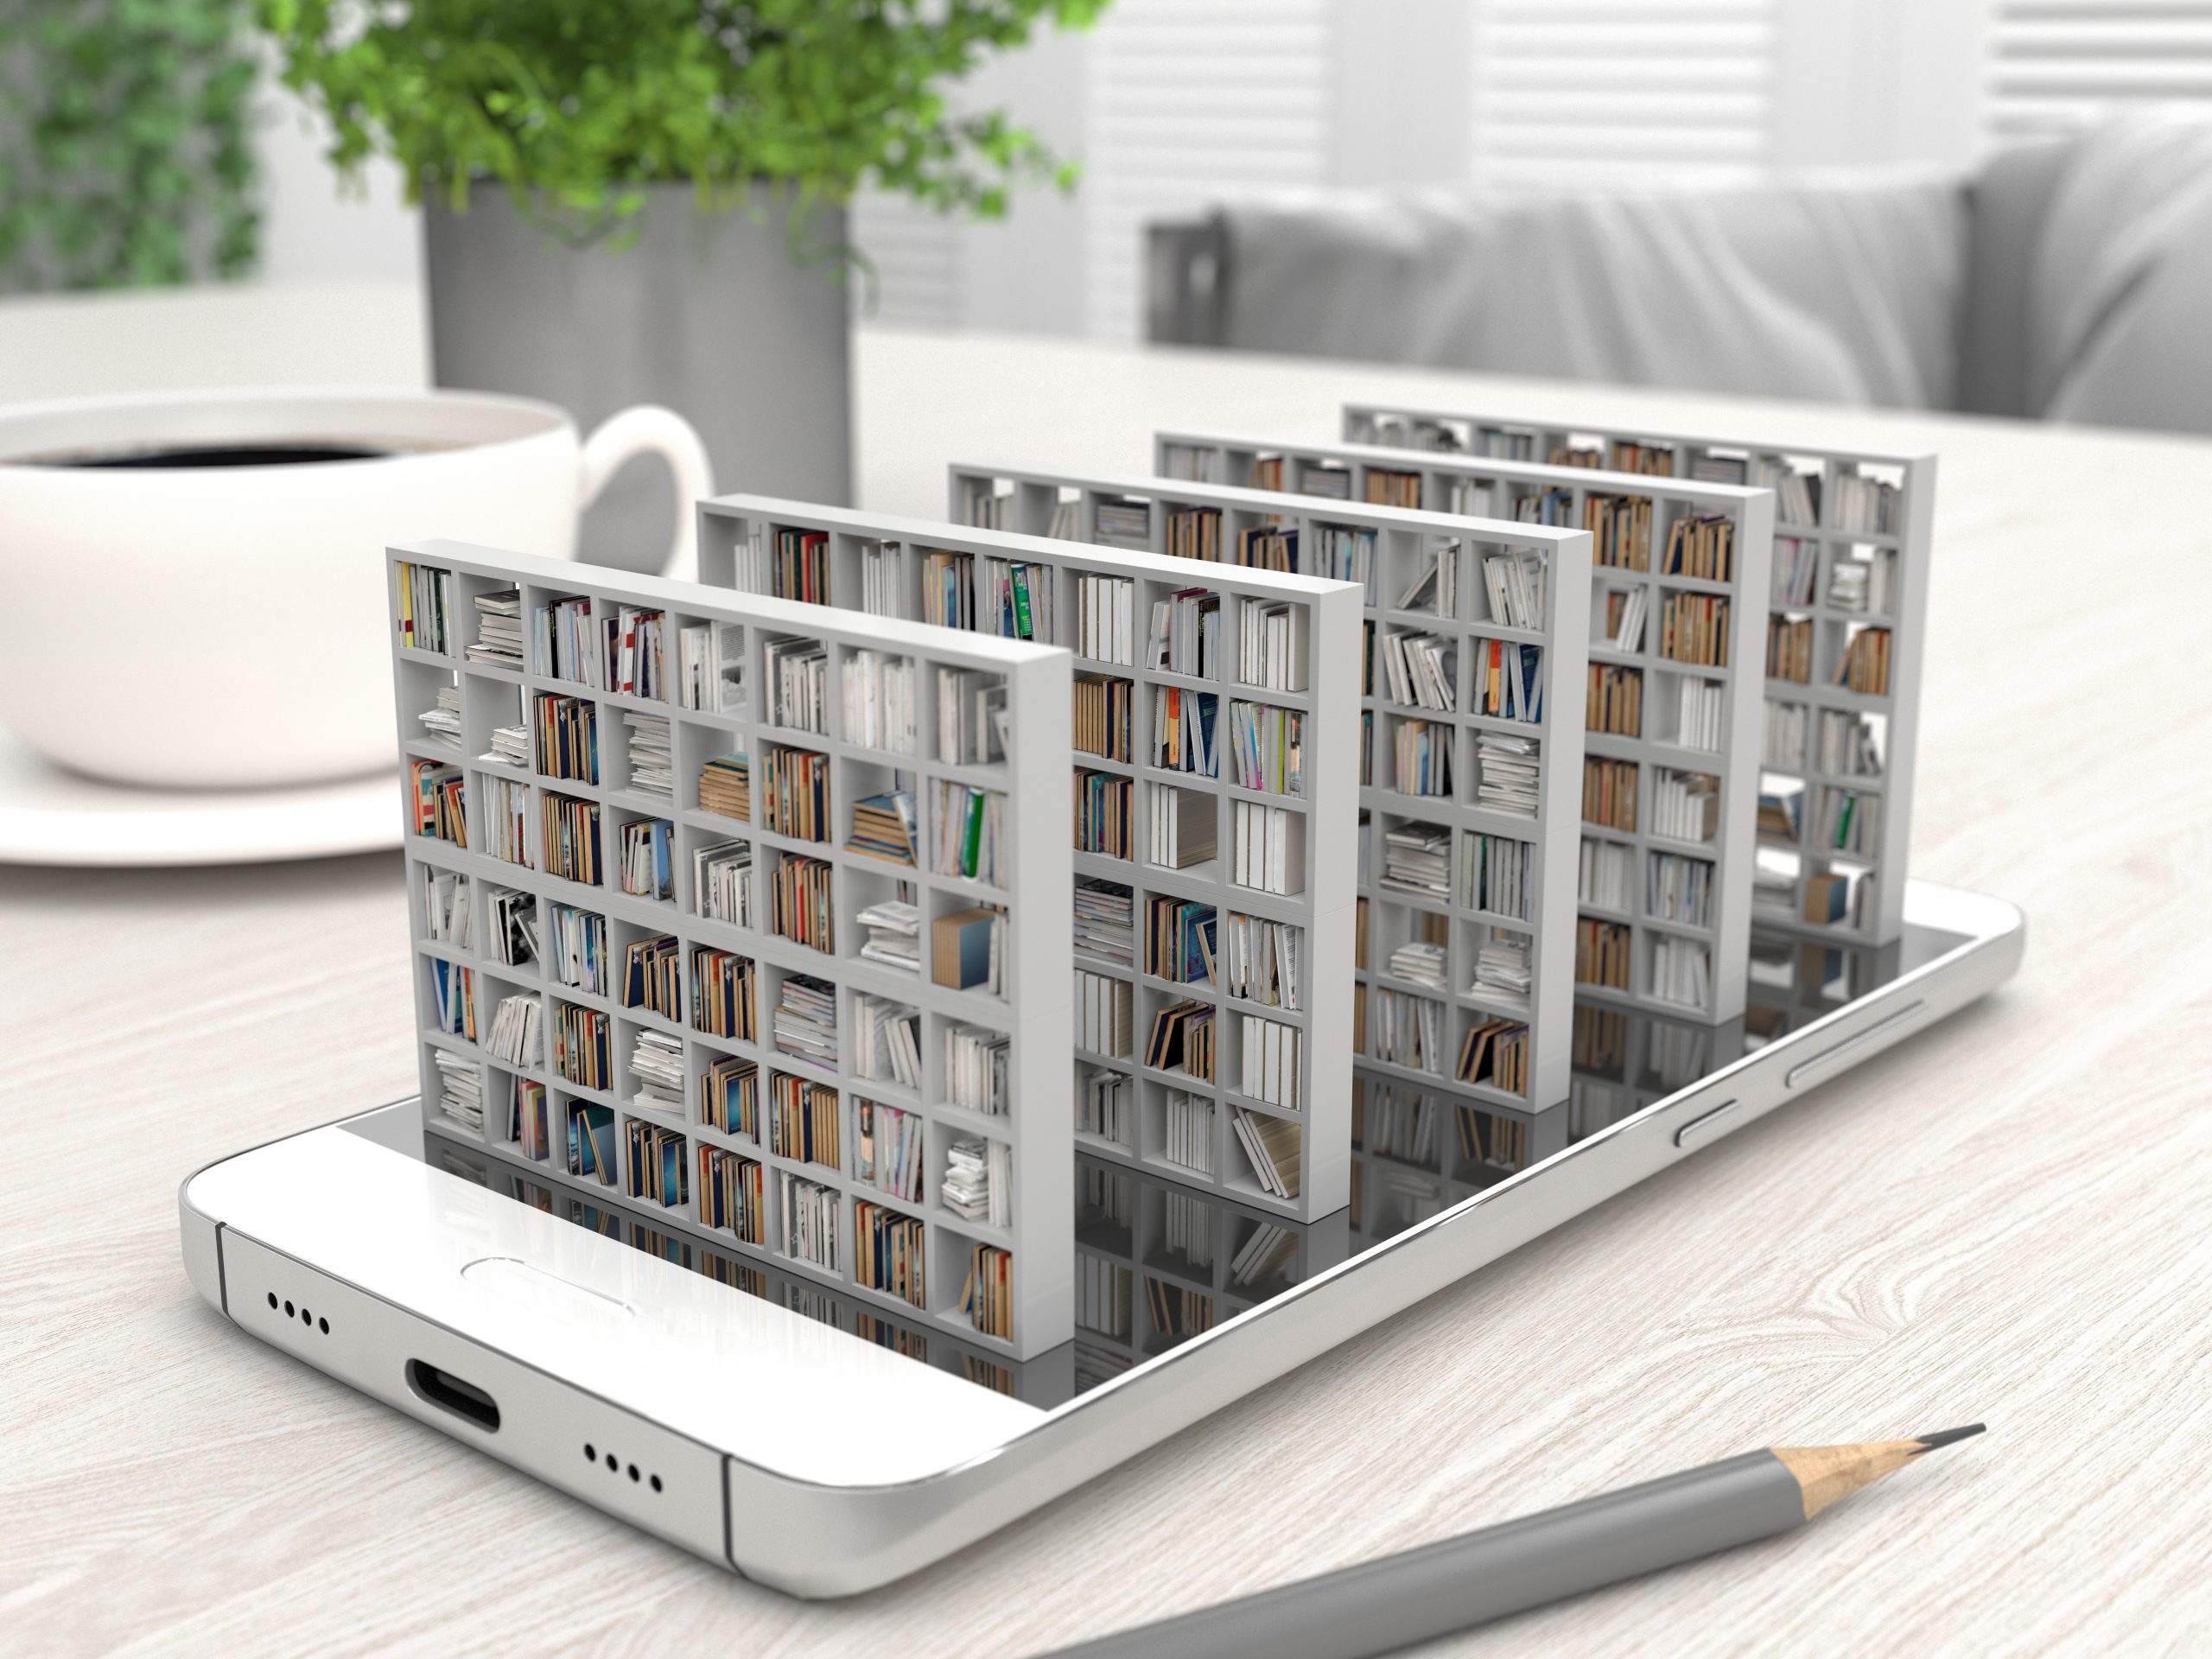 A smartphone with bookshelves showing access to library resources